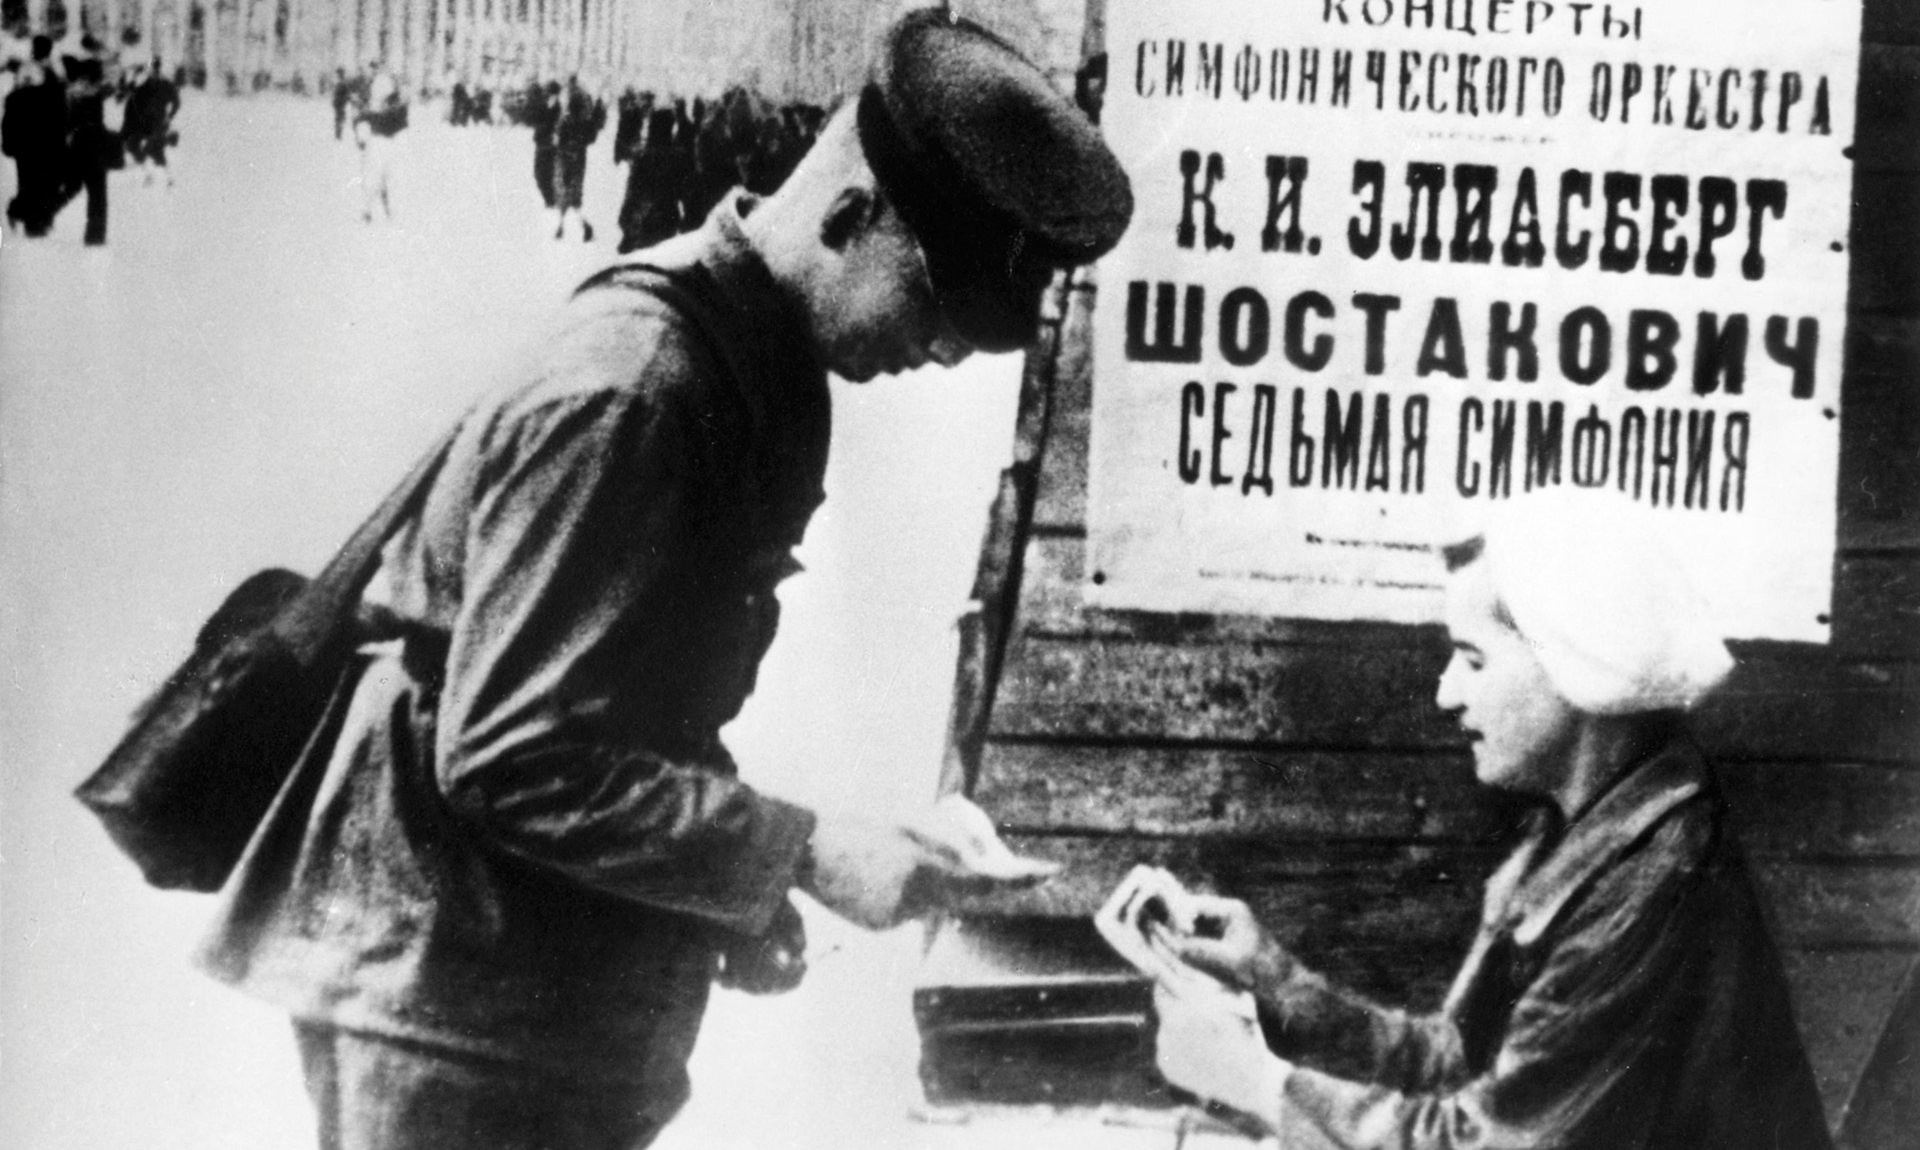 A Soviet soldier buys a ticket to the 1942 performance of Shostakovich's Seventh Symphony in Leningrad. (Photograph Sovfoto/UIG via Getty Images.)